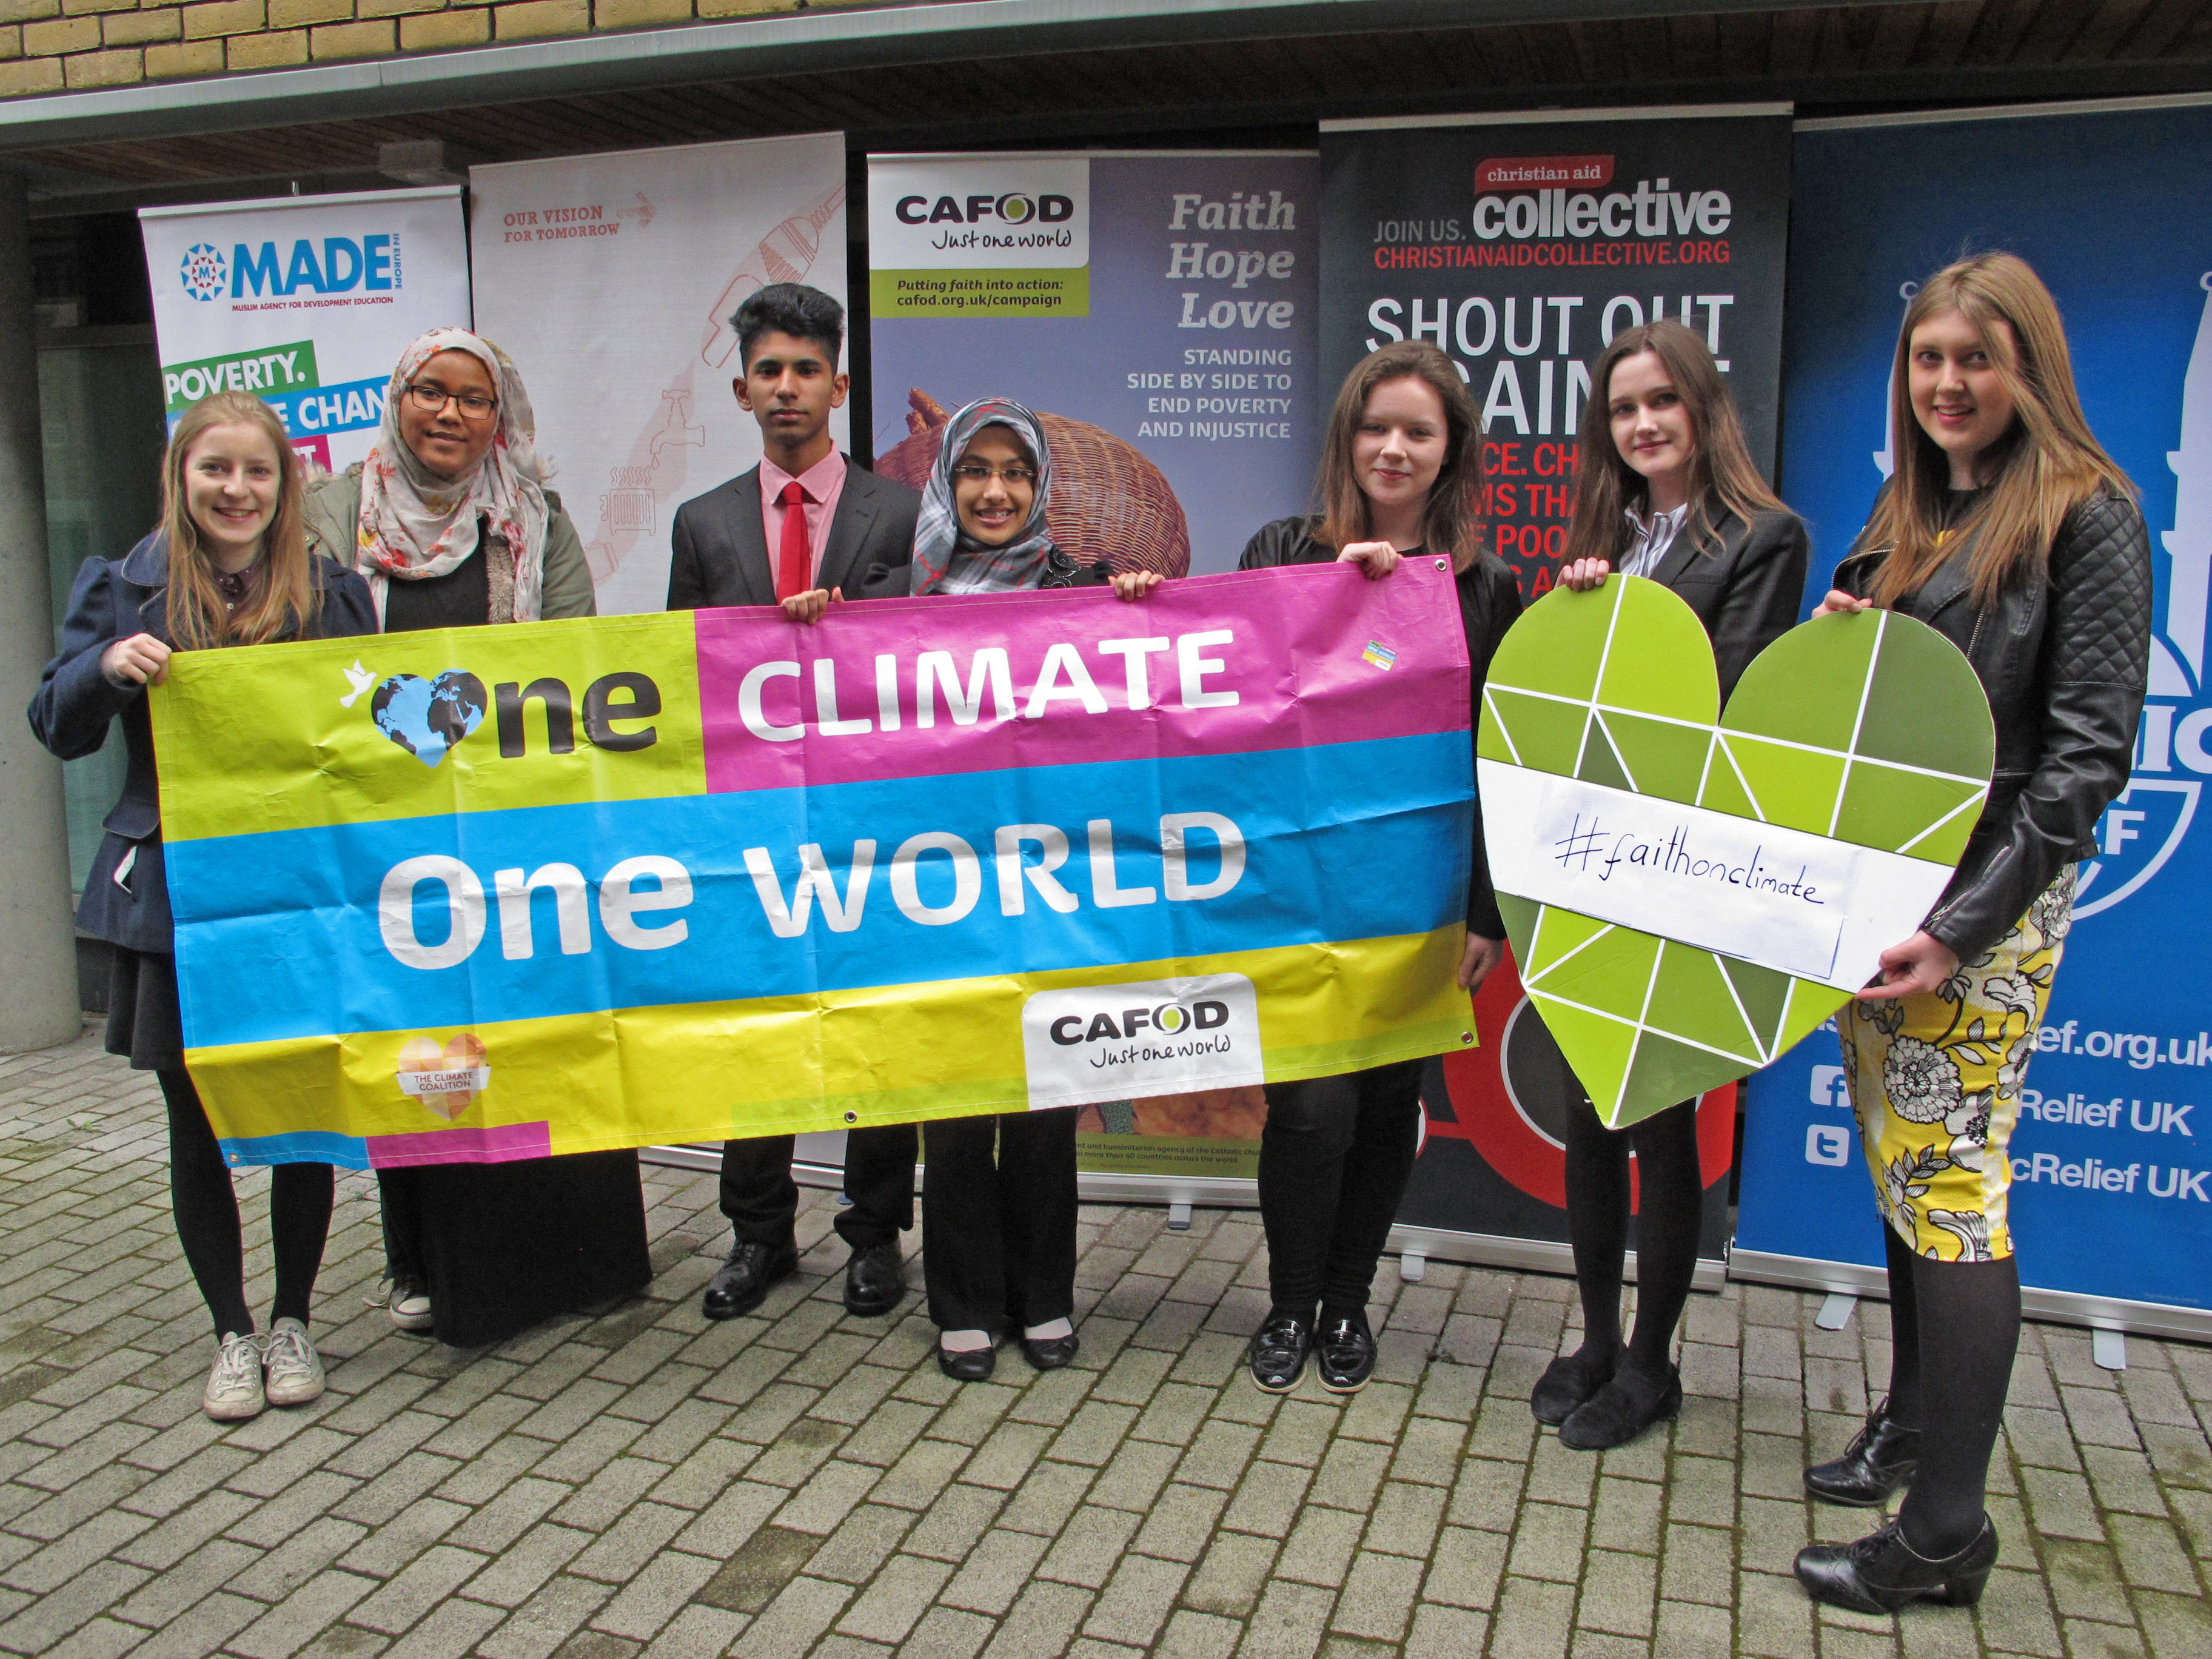 Olivia (second right) took part in the #faithonclimate lobby with other CAFOD young leaders